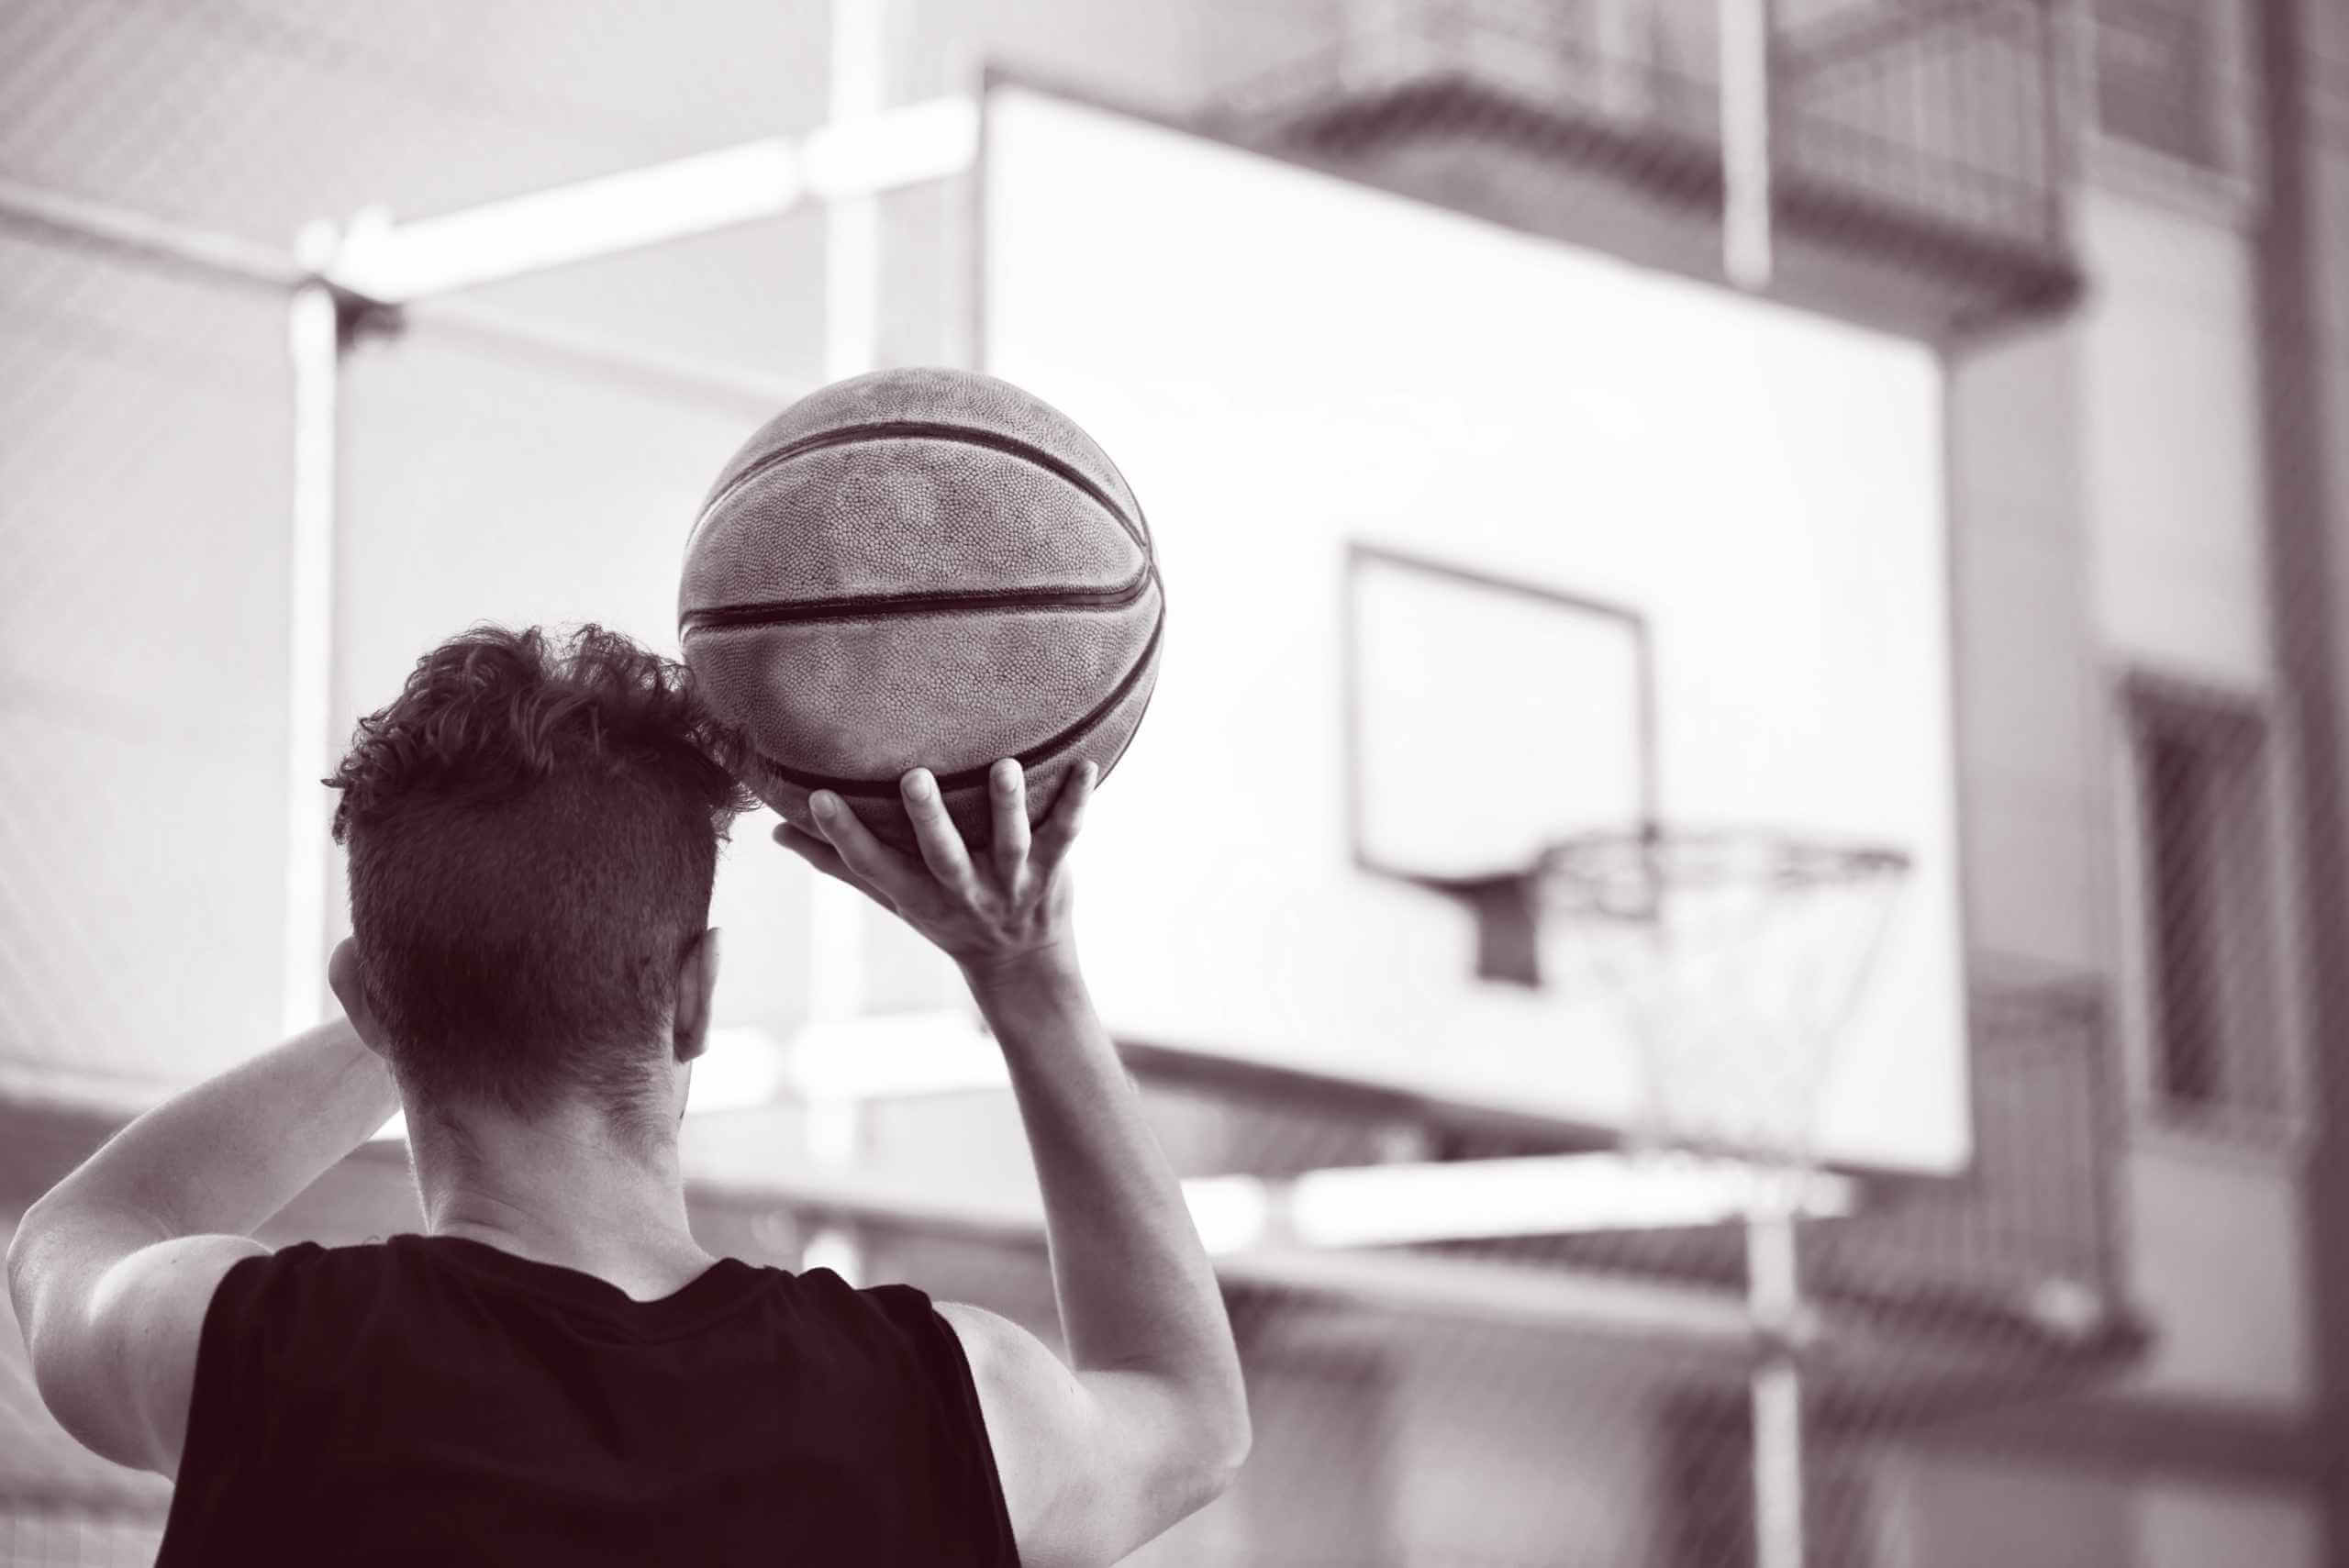 Basketball player - The Effects of Instrument-Assisted Soft Tissue Mobilization, Tissue Flossing, and Kinesiology Taping on Shoulder Functional Capacities in Amateur Athletes